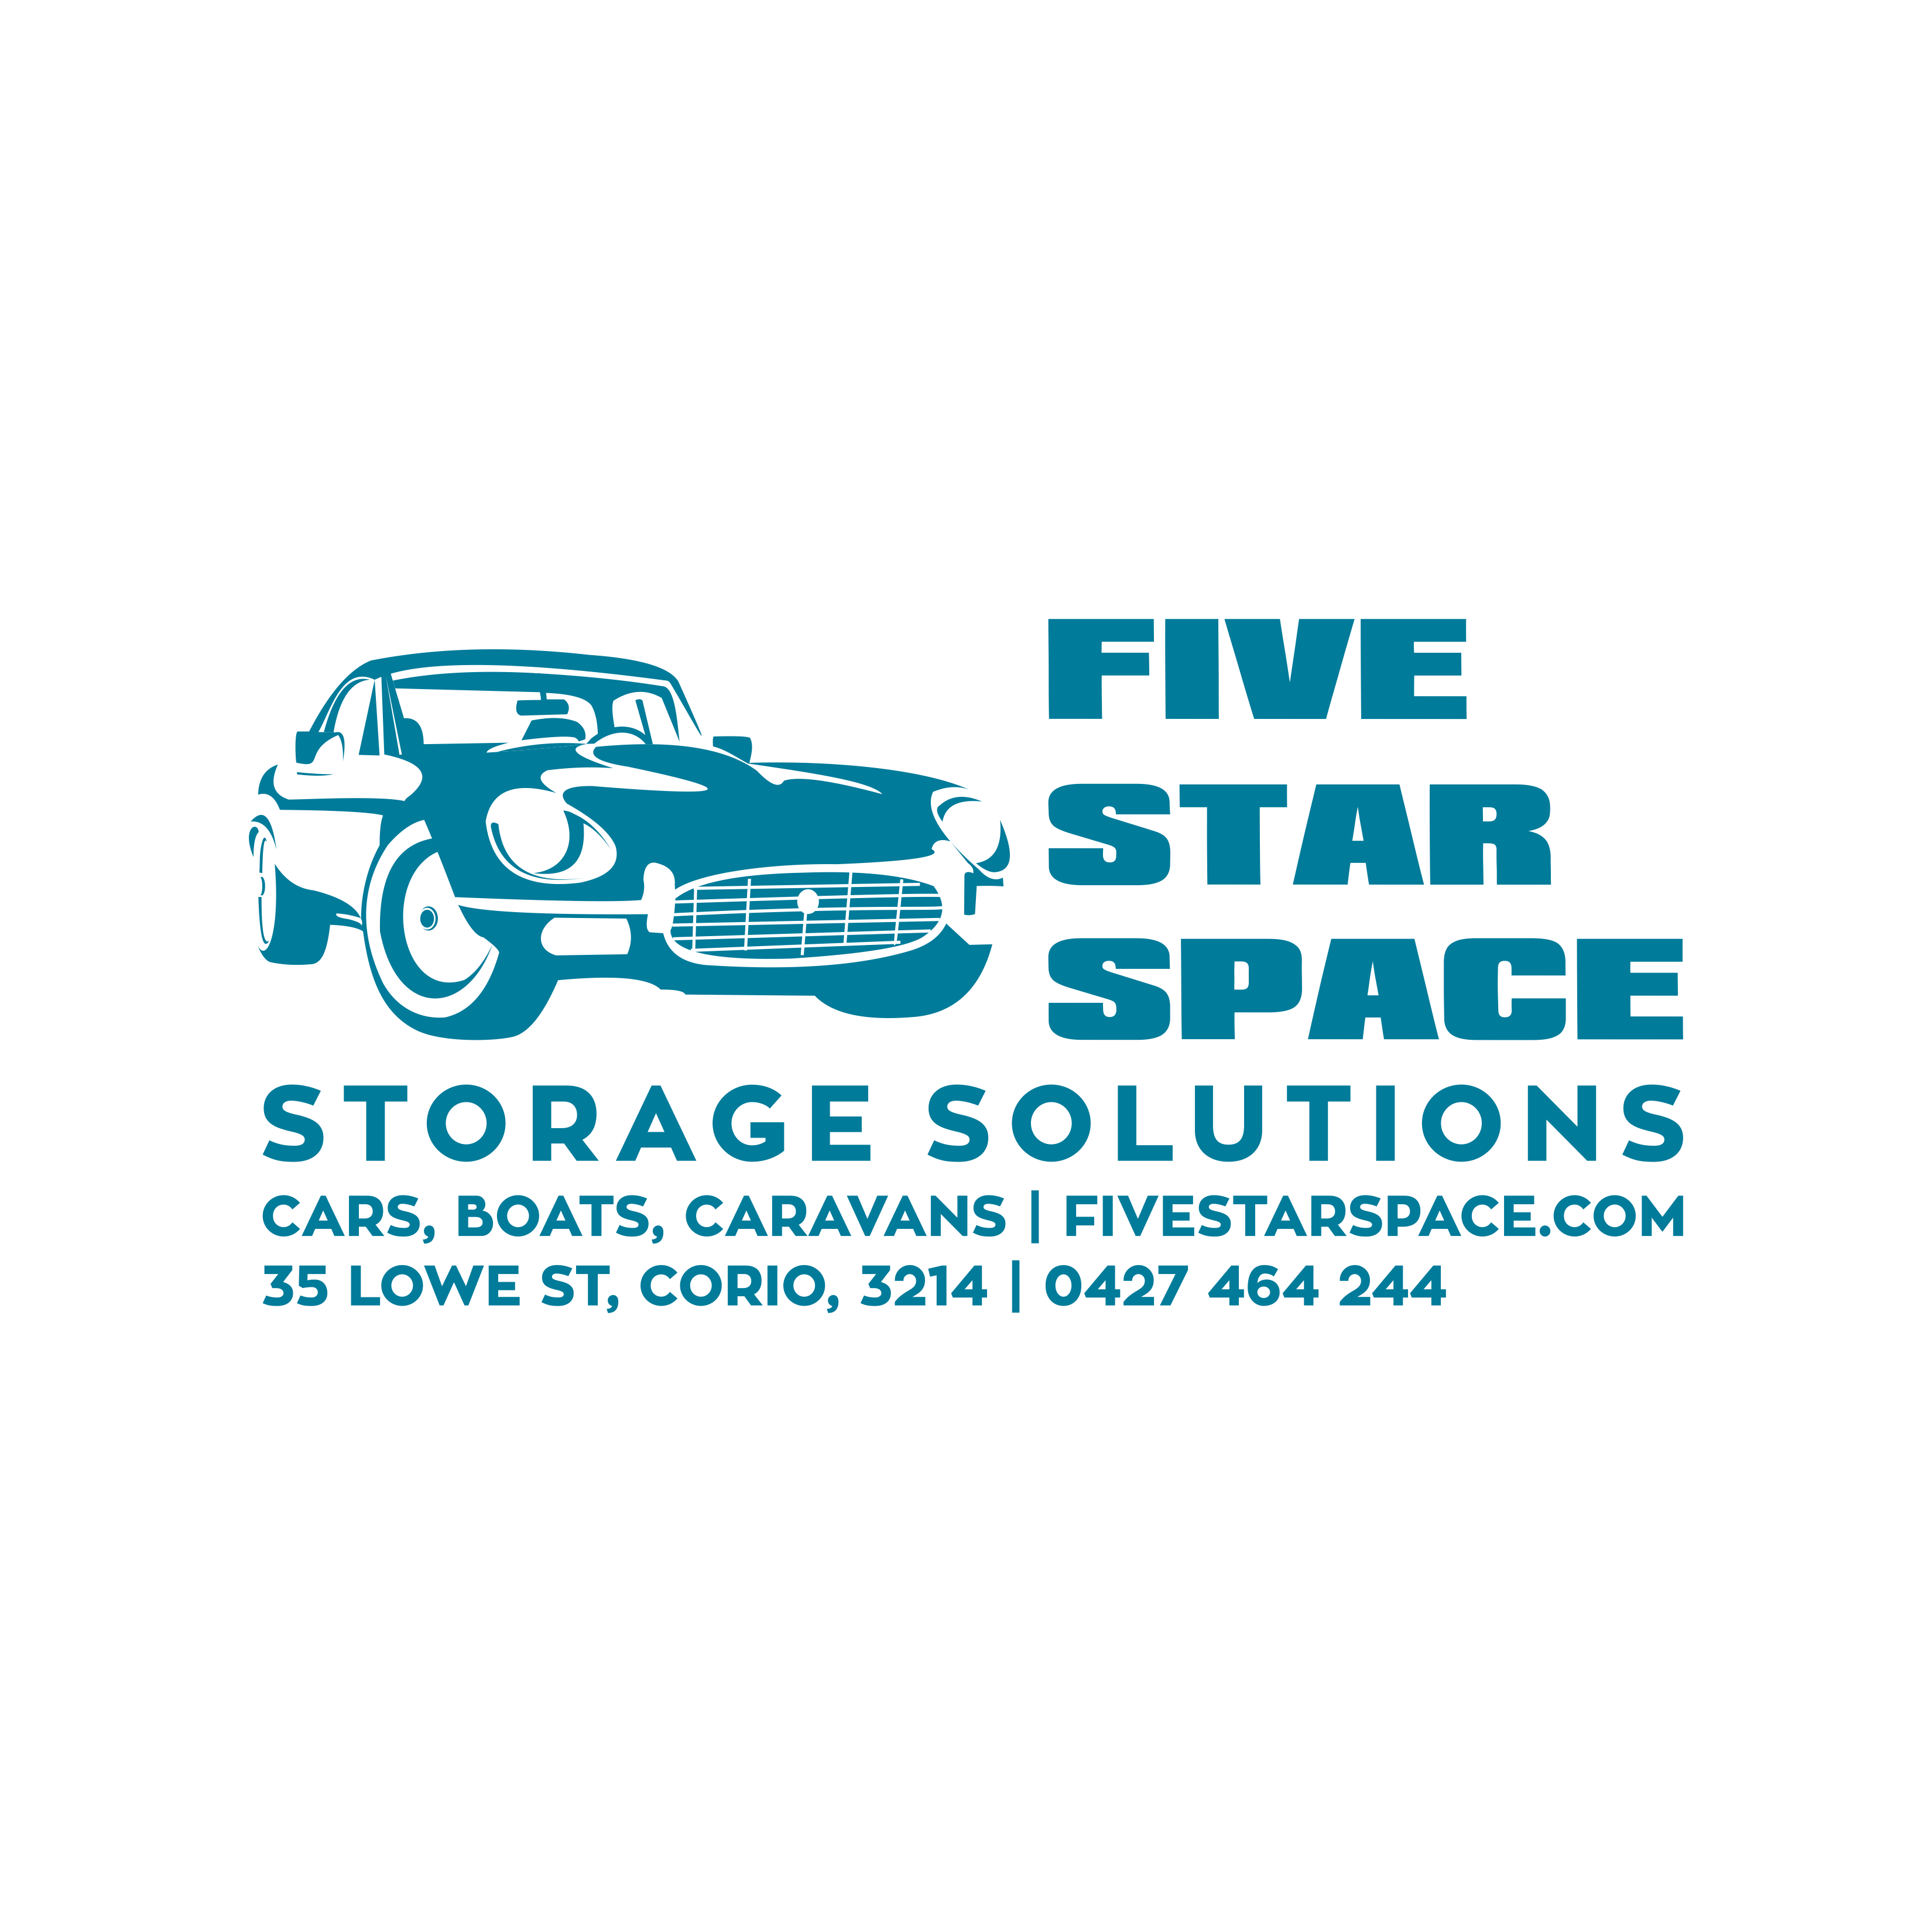 Five Star Space